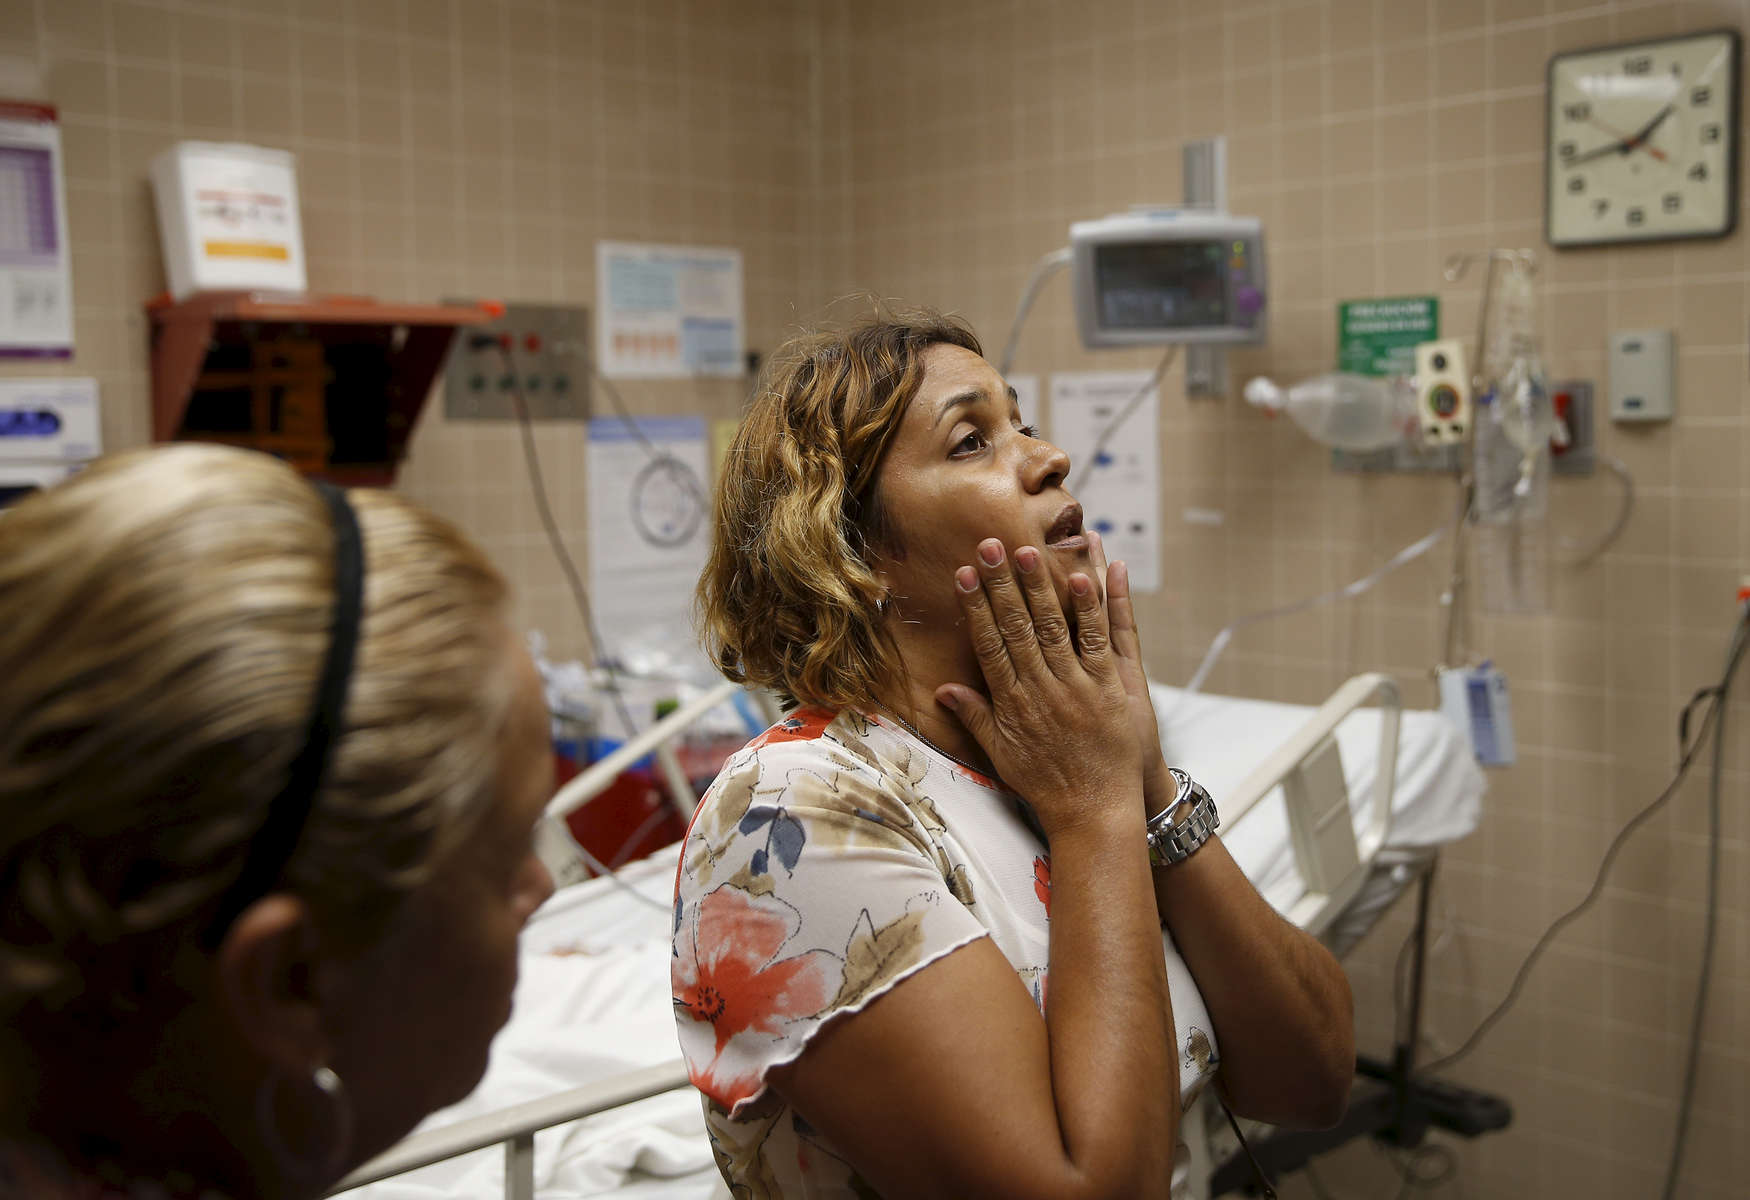 """Caguas, Puerto Rico -- 9/29/2017 -  Myriam Ruiz waits inside the emergency room where her father, Luis Alberto Ruiz, is being treated after attempting to hang himself with his belt. When Myriam found him behind their home, she began to scream. Moments later, two neighbors rushed over and helped pull his limp body down from the roof. There was no way to call an ambulance, so they carried him to their Jeep and sped to the hospital. Her father's medical problems had gotten worse in recent weeks, she explained. He kept worrying about all the trouble he was causing her, and told her he would take care of it. """"There was a lot of stress at the house,"""" she said. """"The hurricane put him over the edge."""""""